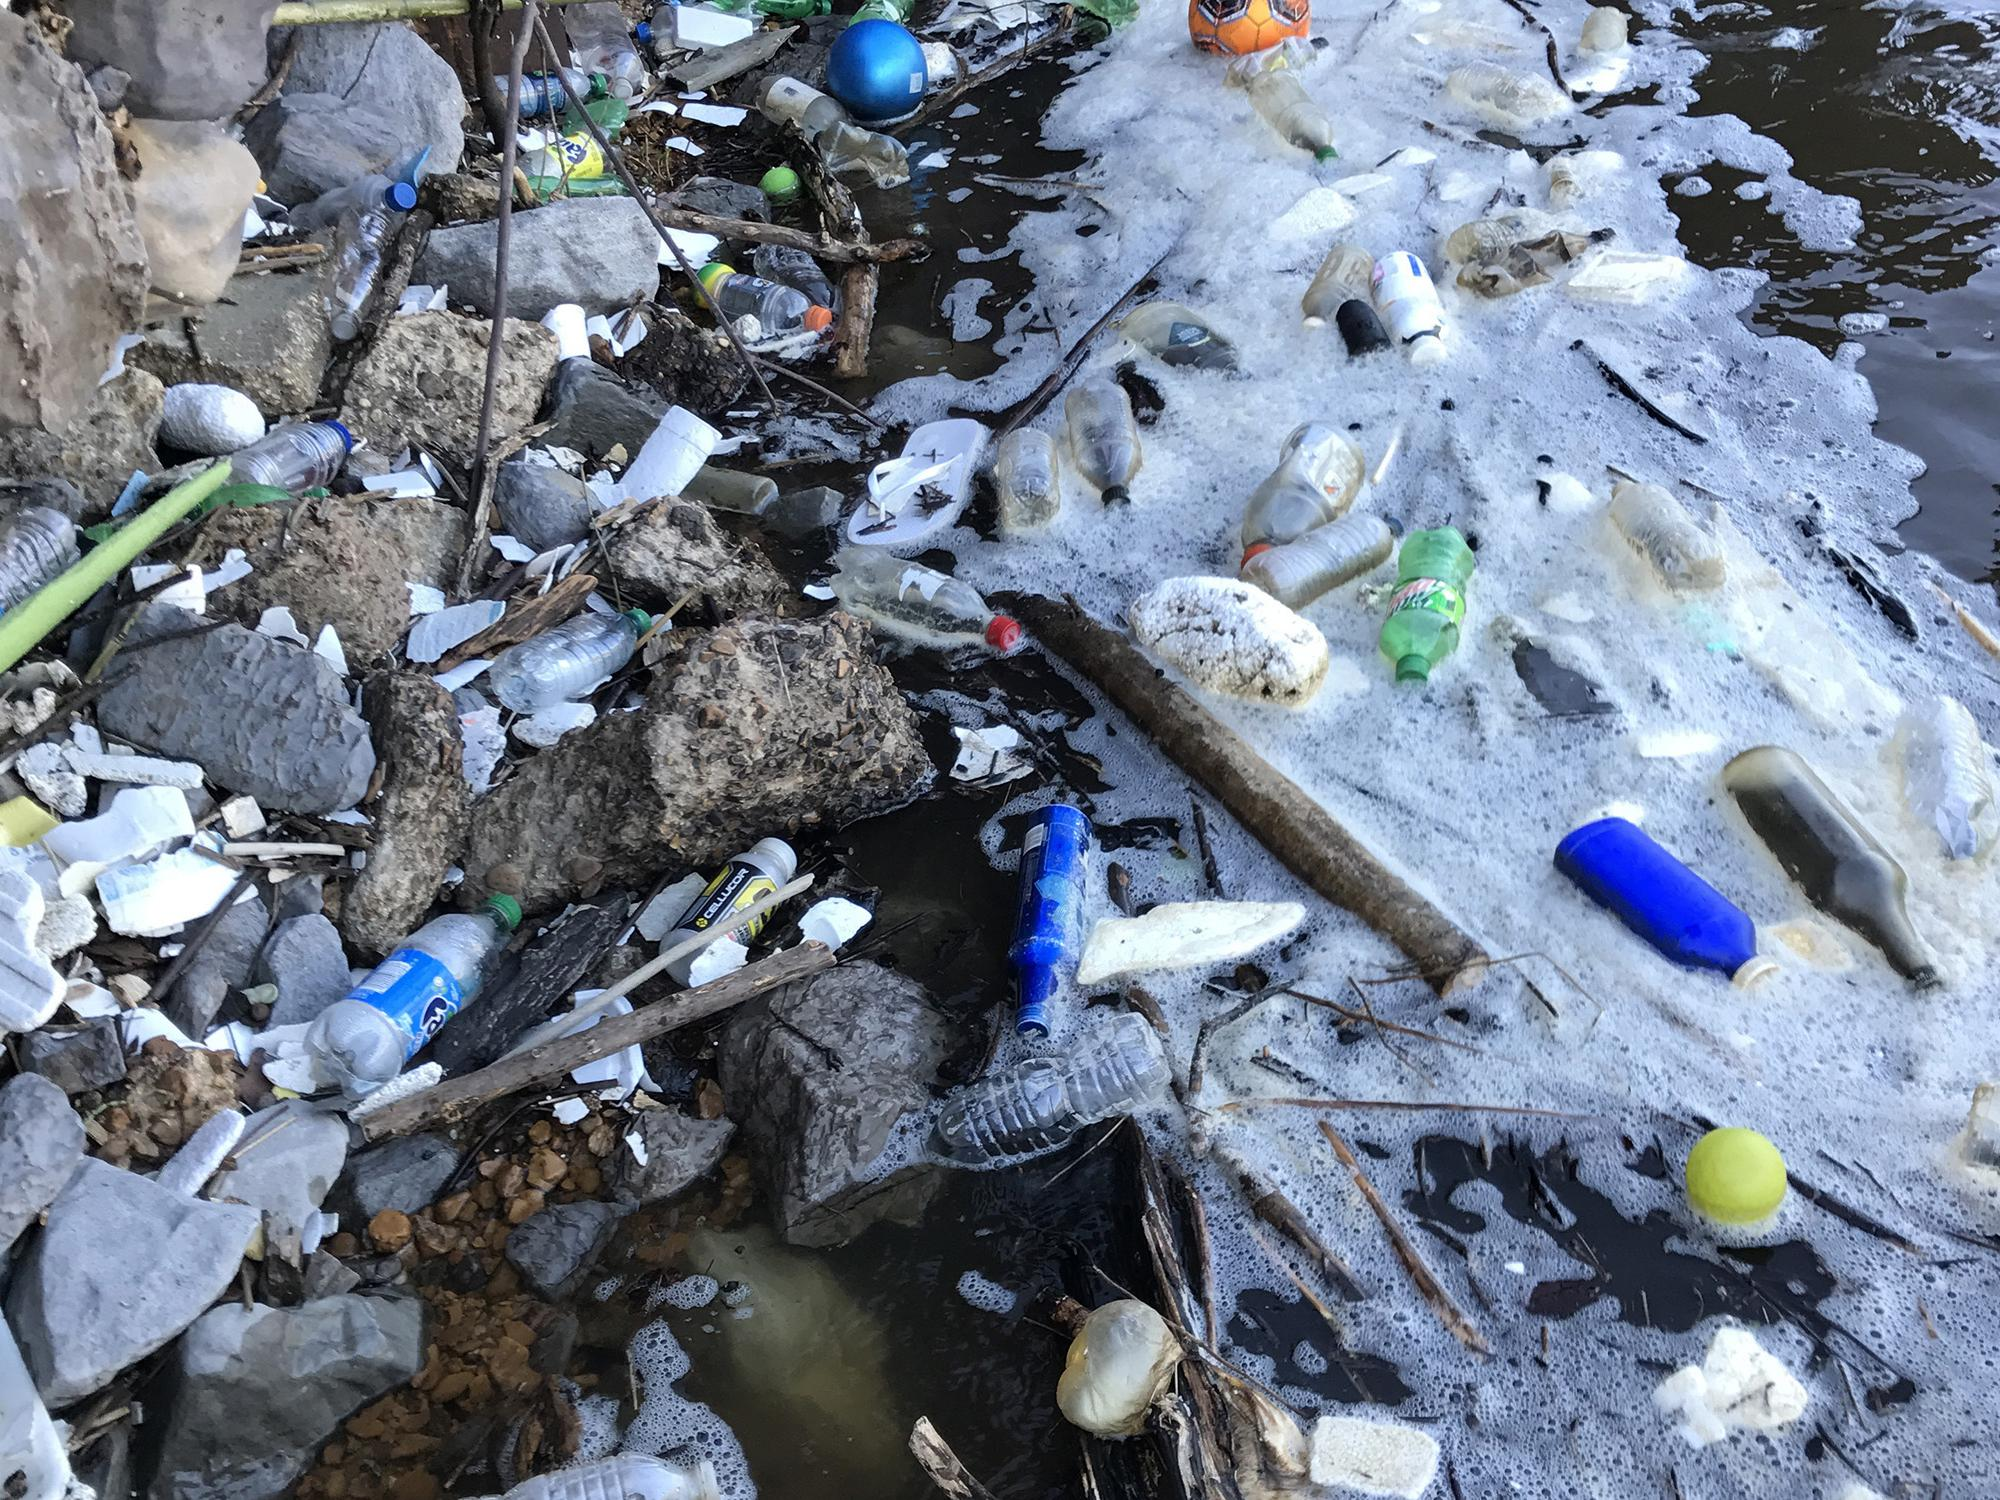 This is an example of trash found recently at a popular fishing area on the Pearl River. (Submitted photo/Abby Braman)